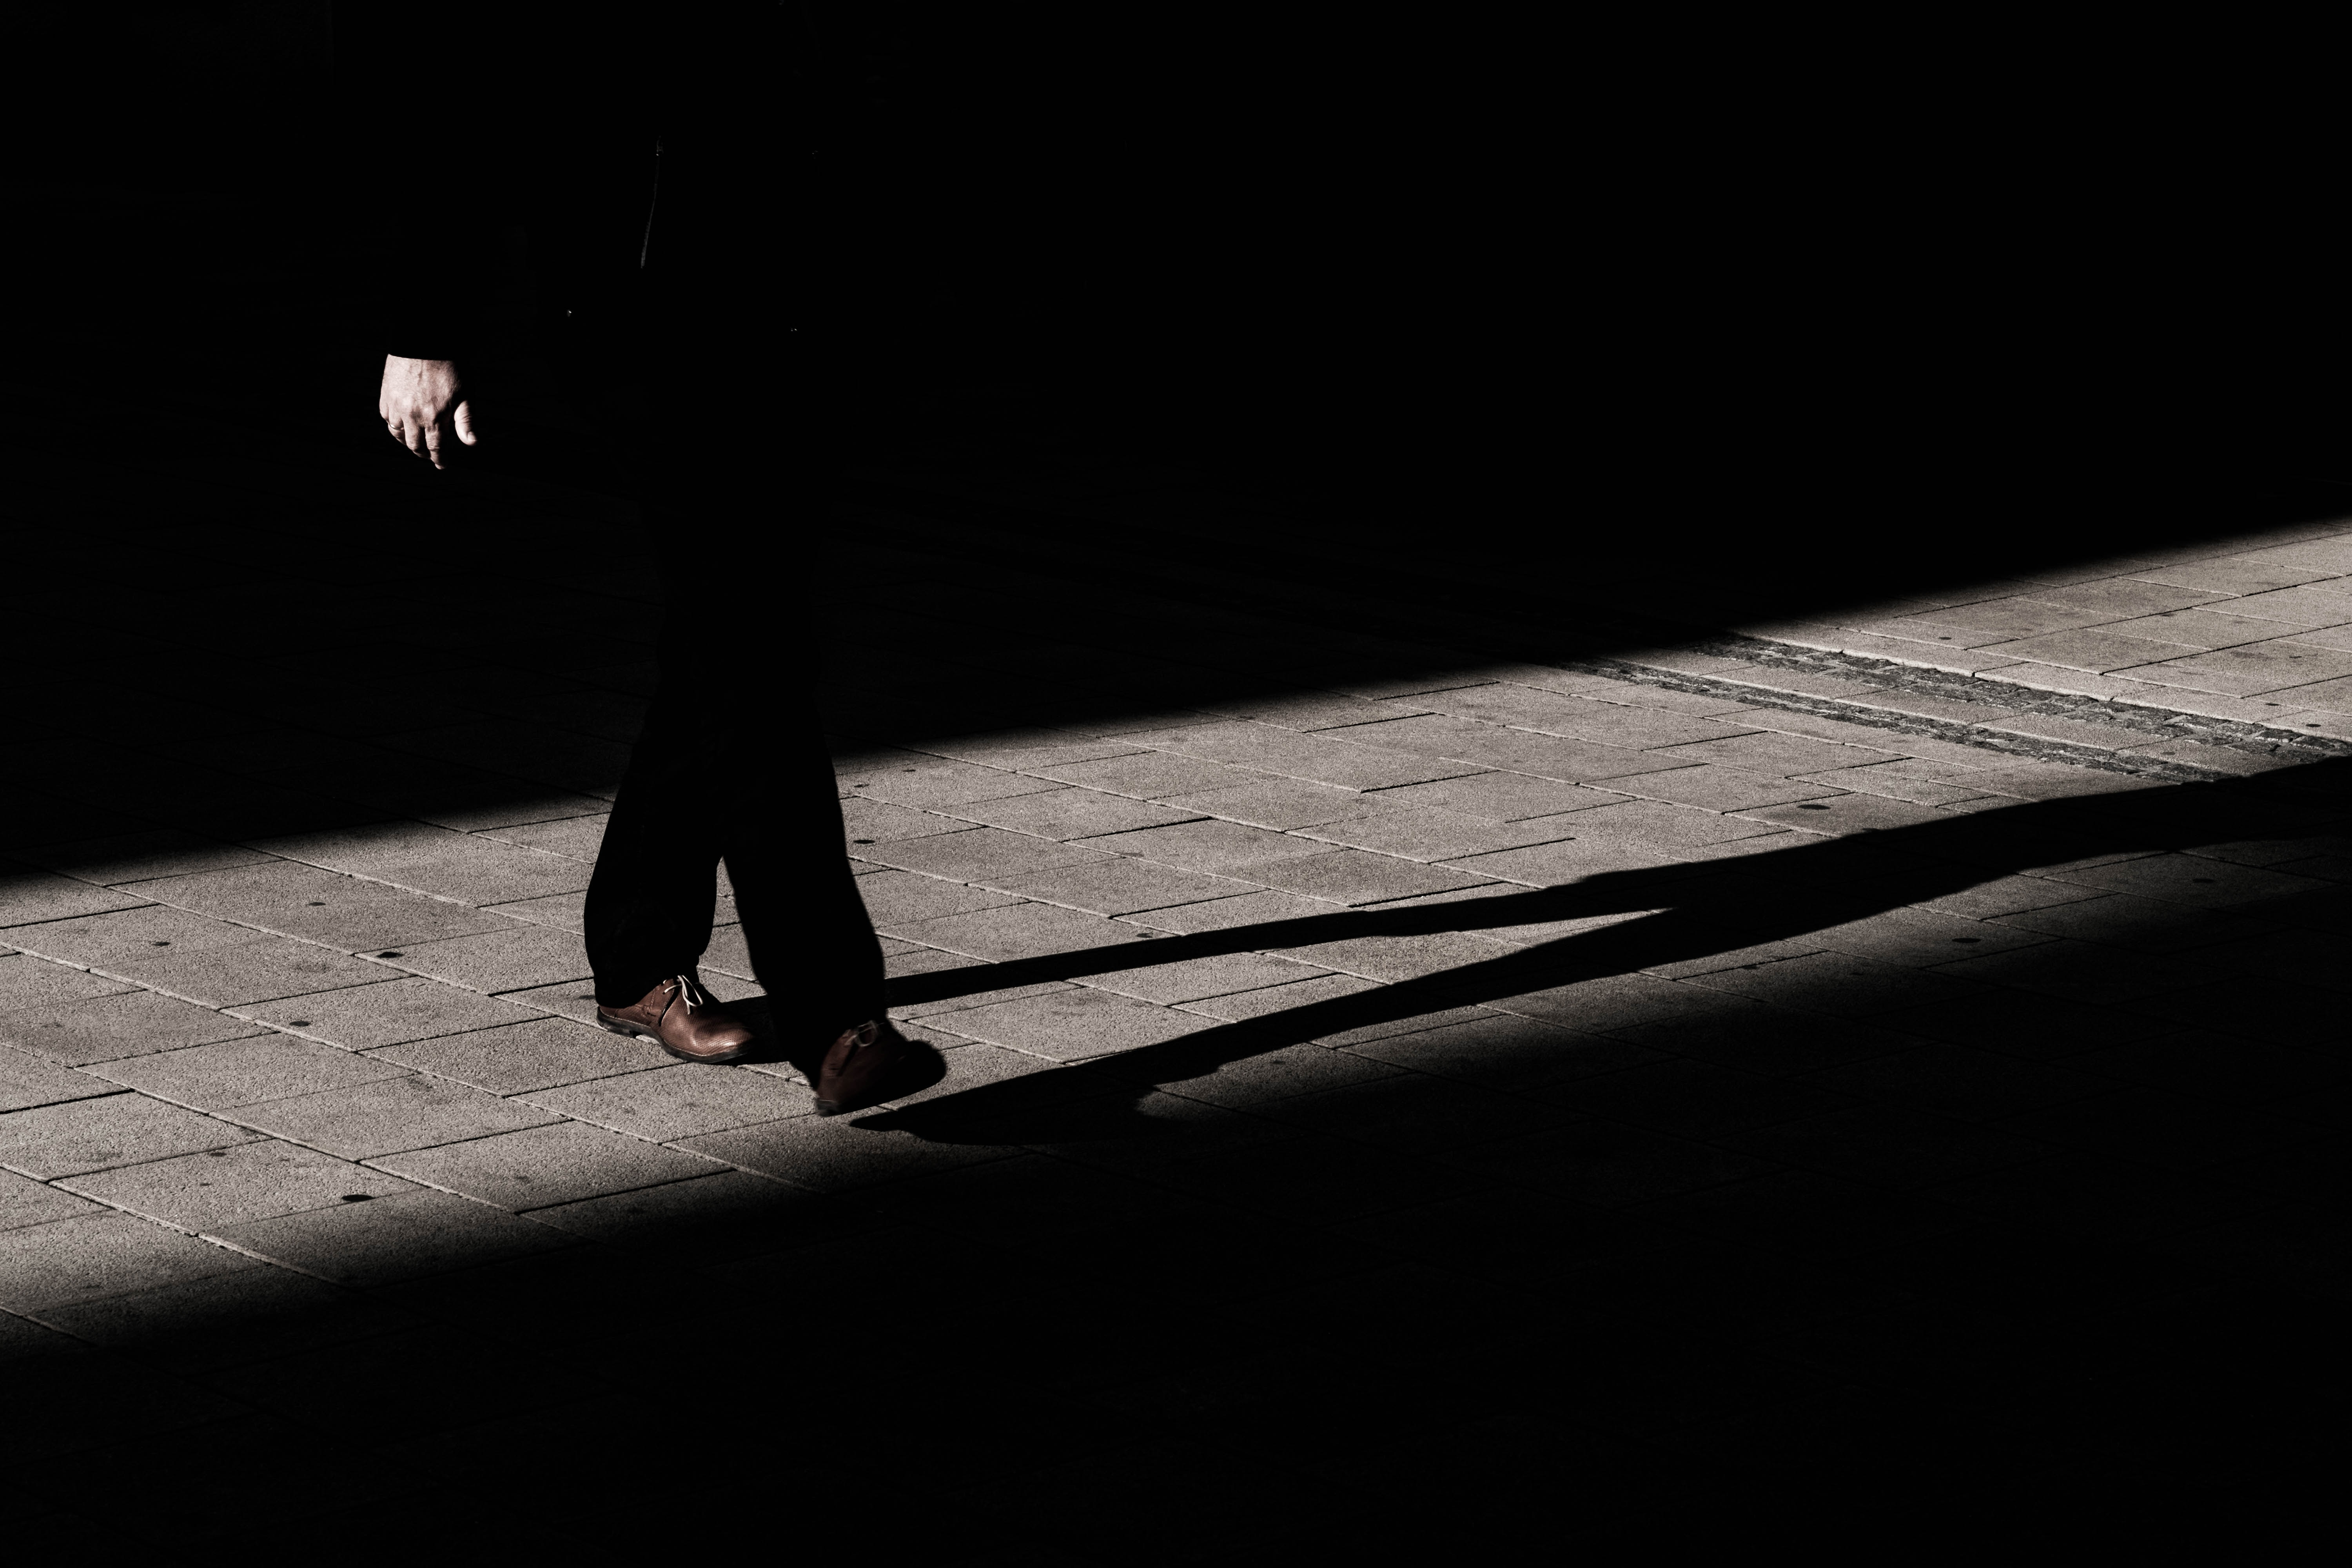 Man walking in the shadow